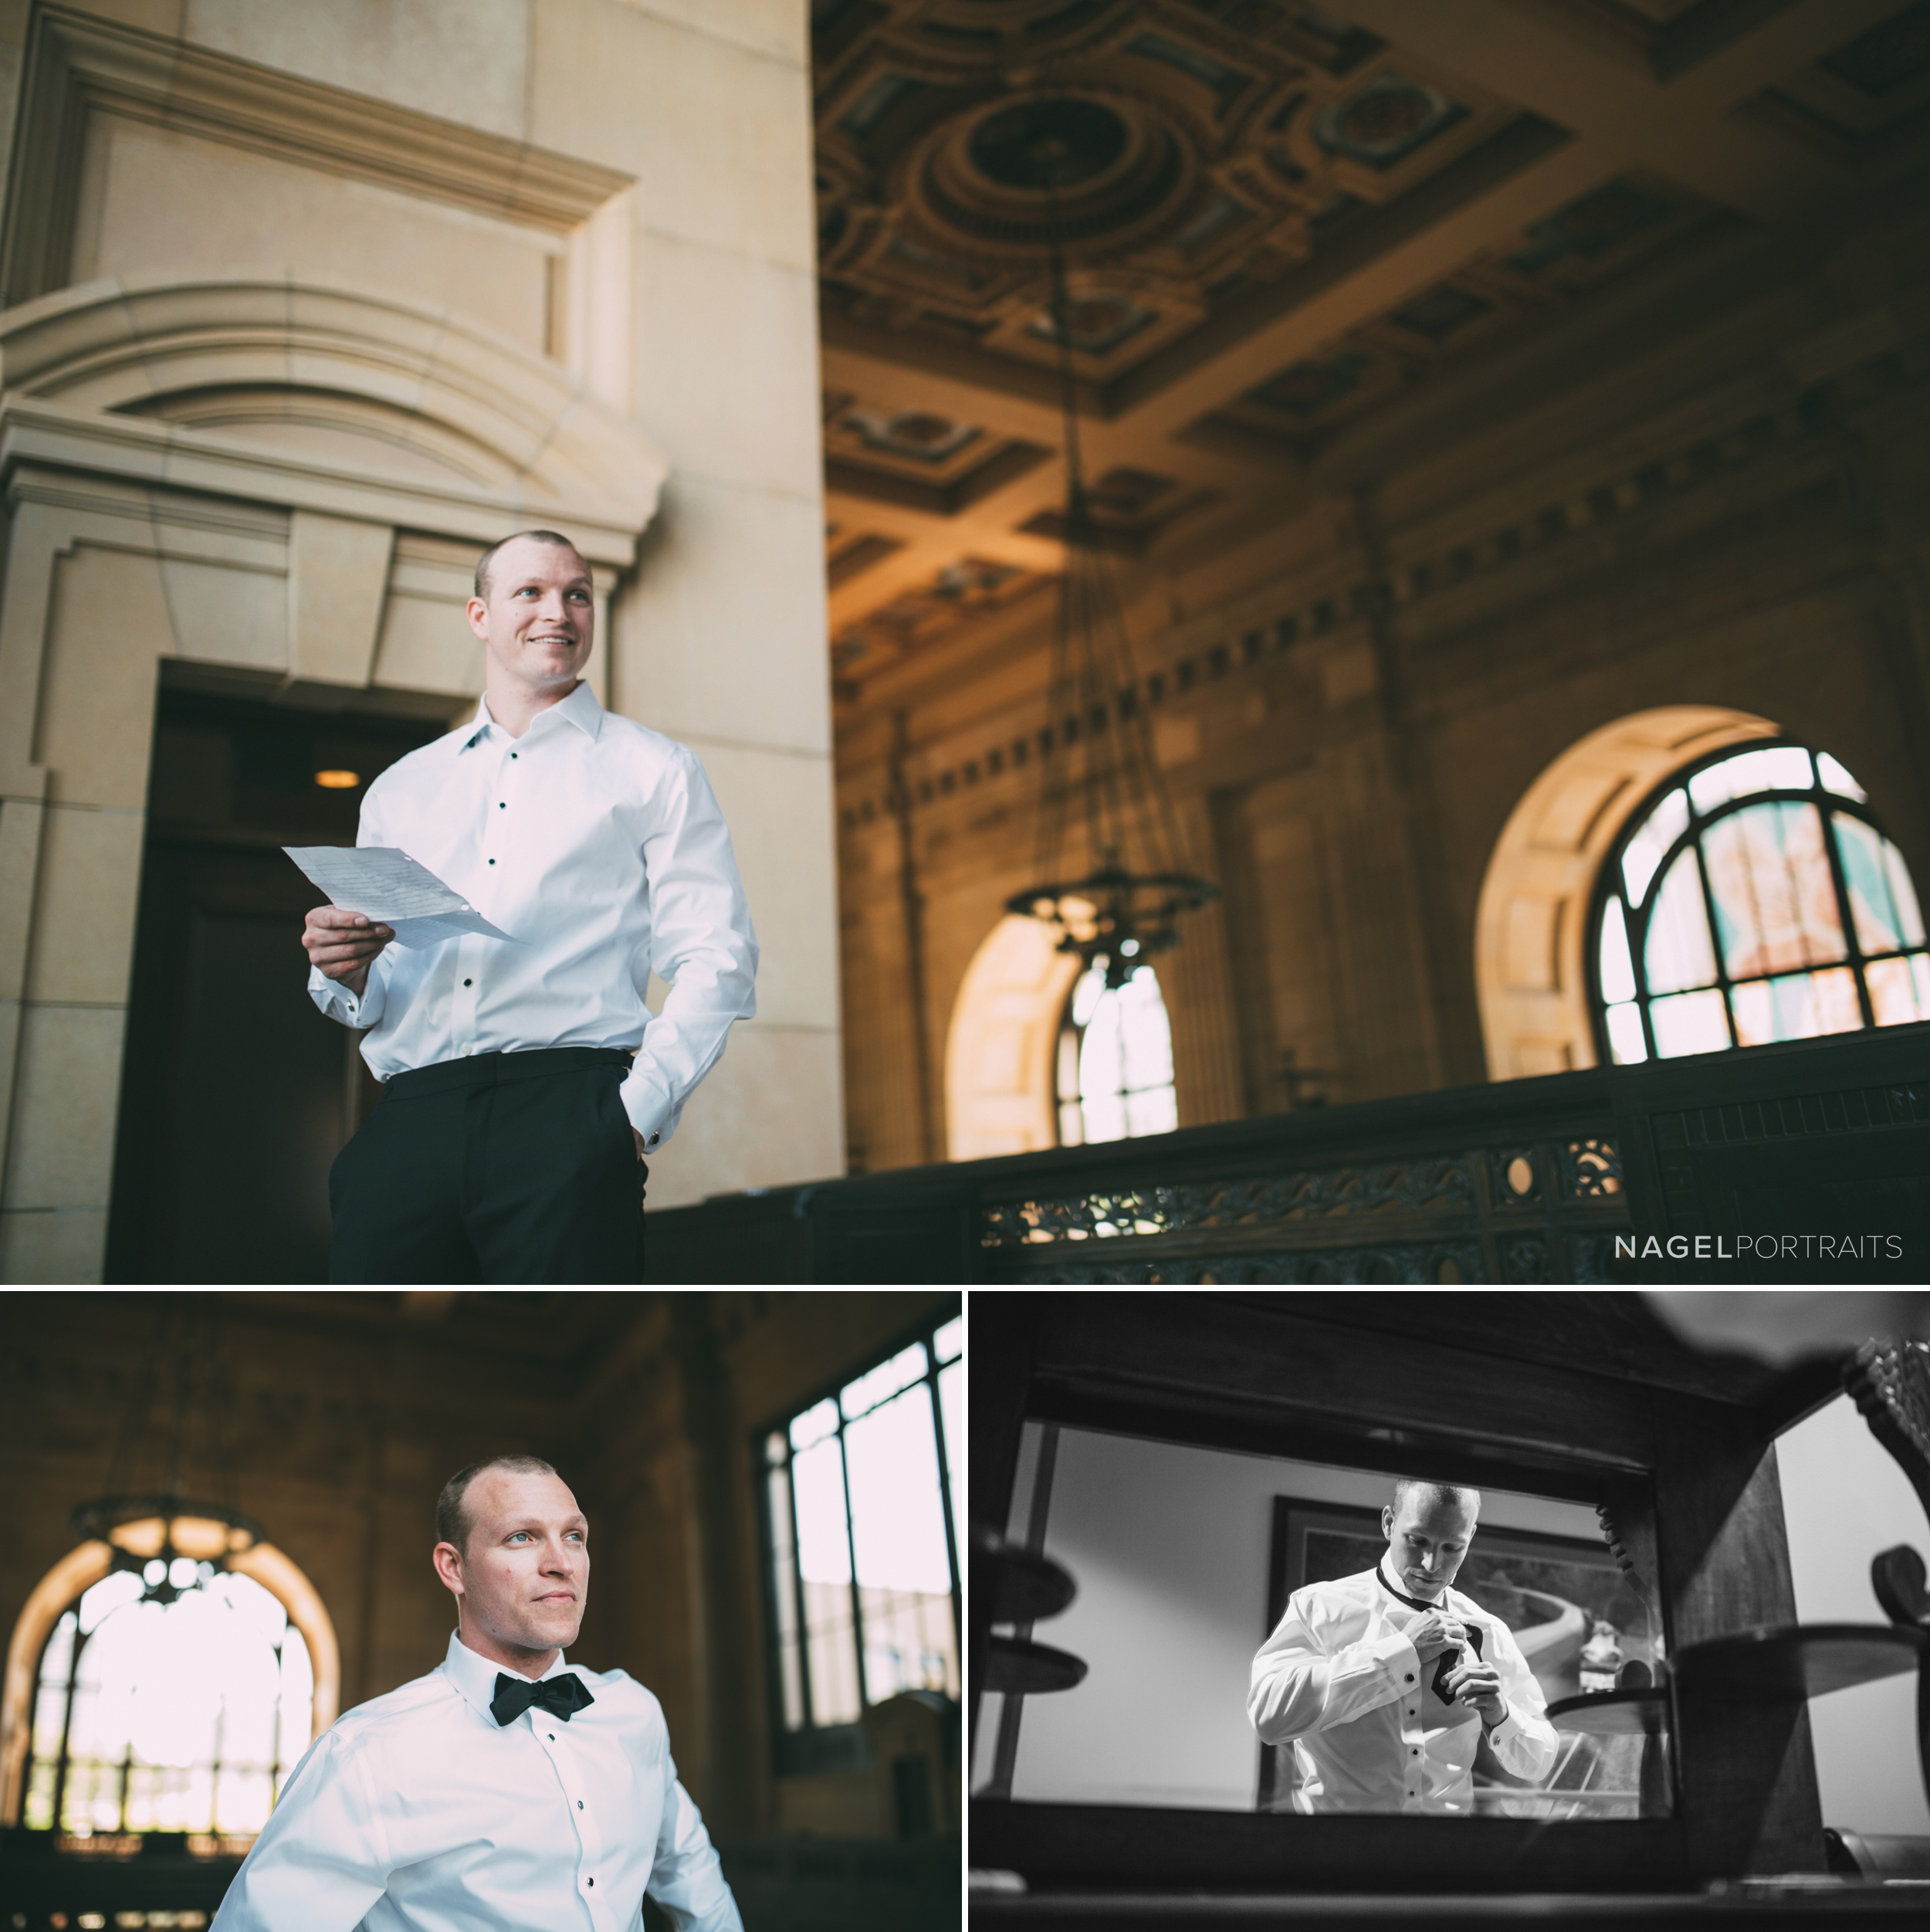 Groom reads a letter from bride on wedding day - classical architecture